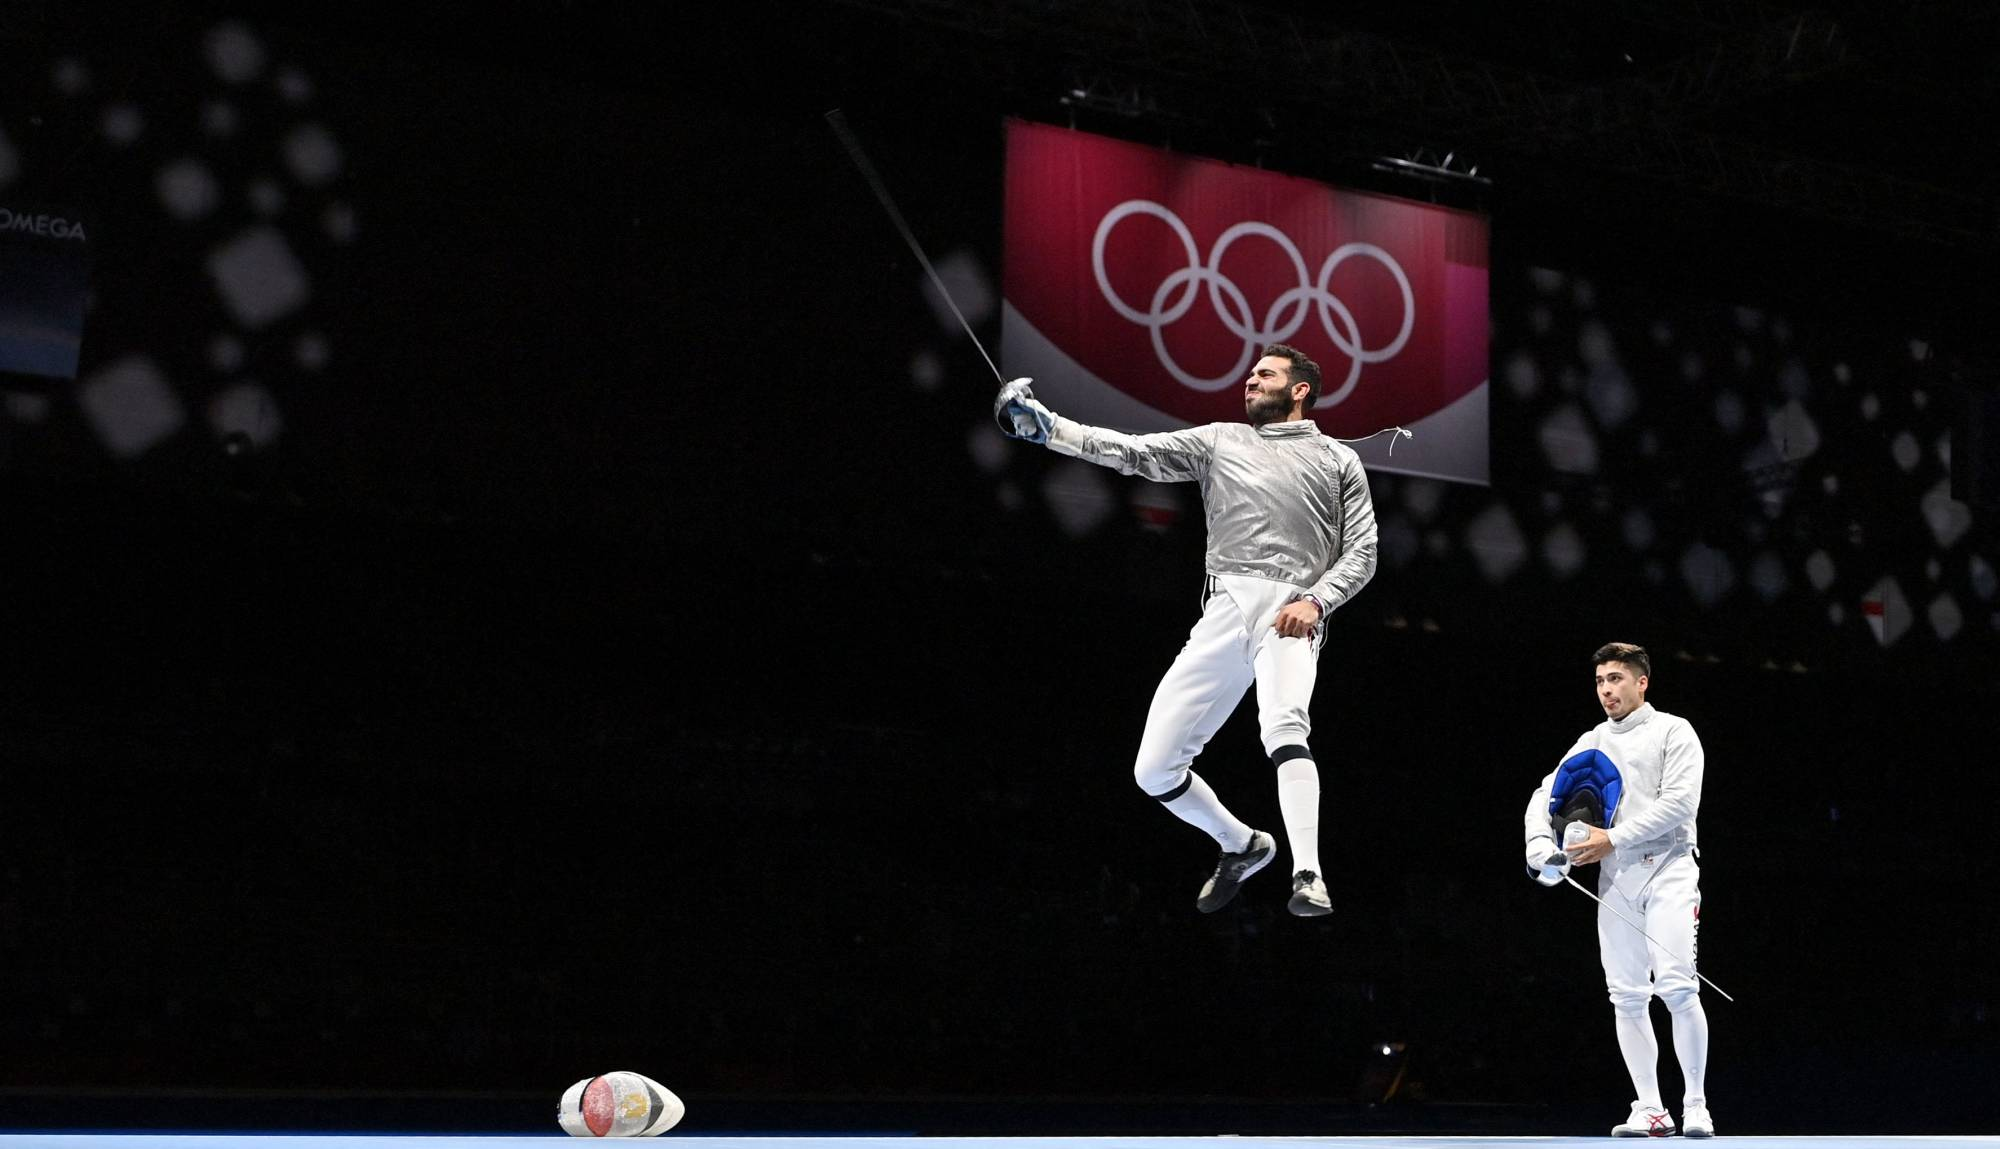 Egypt's Ziad Elsissy (left) celebrates scoring the final point against Japan's Kaito Streets in the men's sabre team qualifying bout. | AFP-JIJI